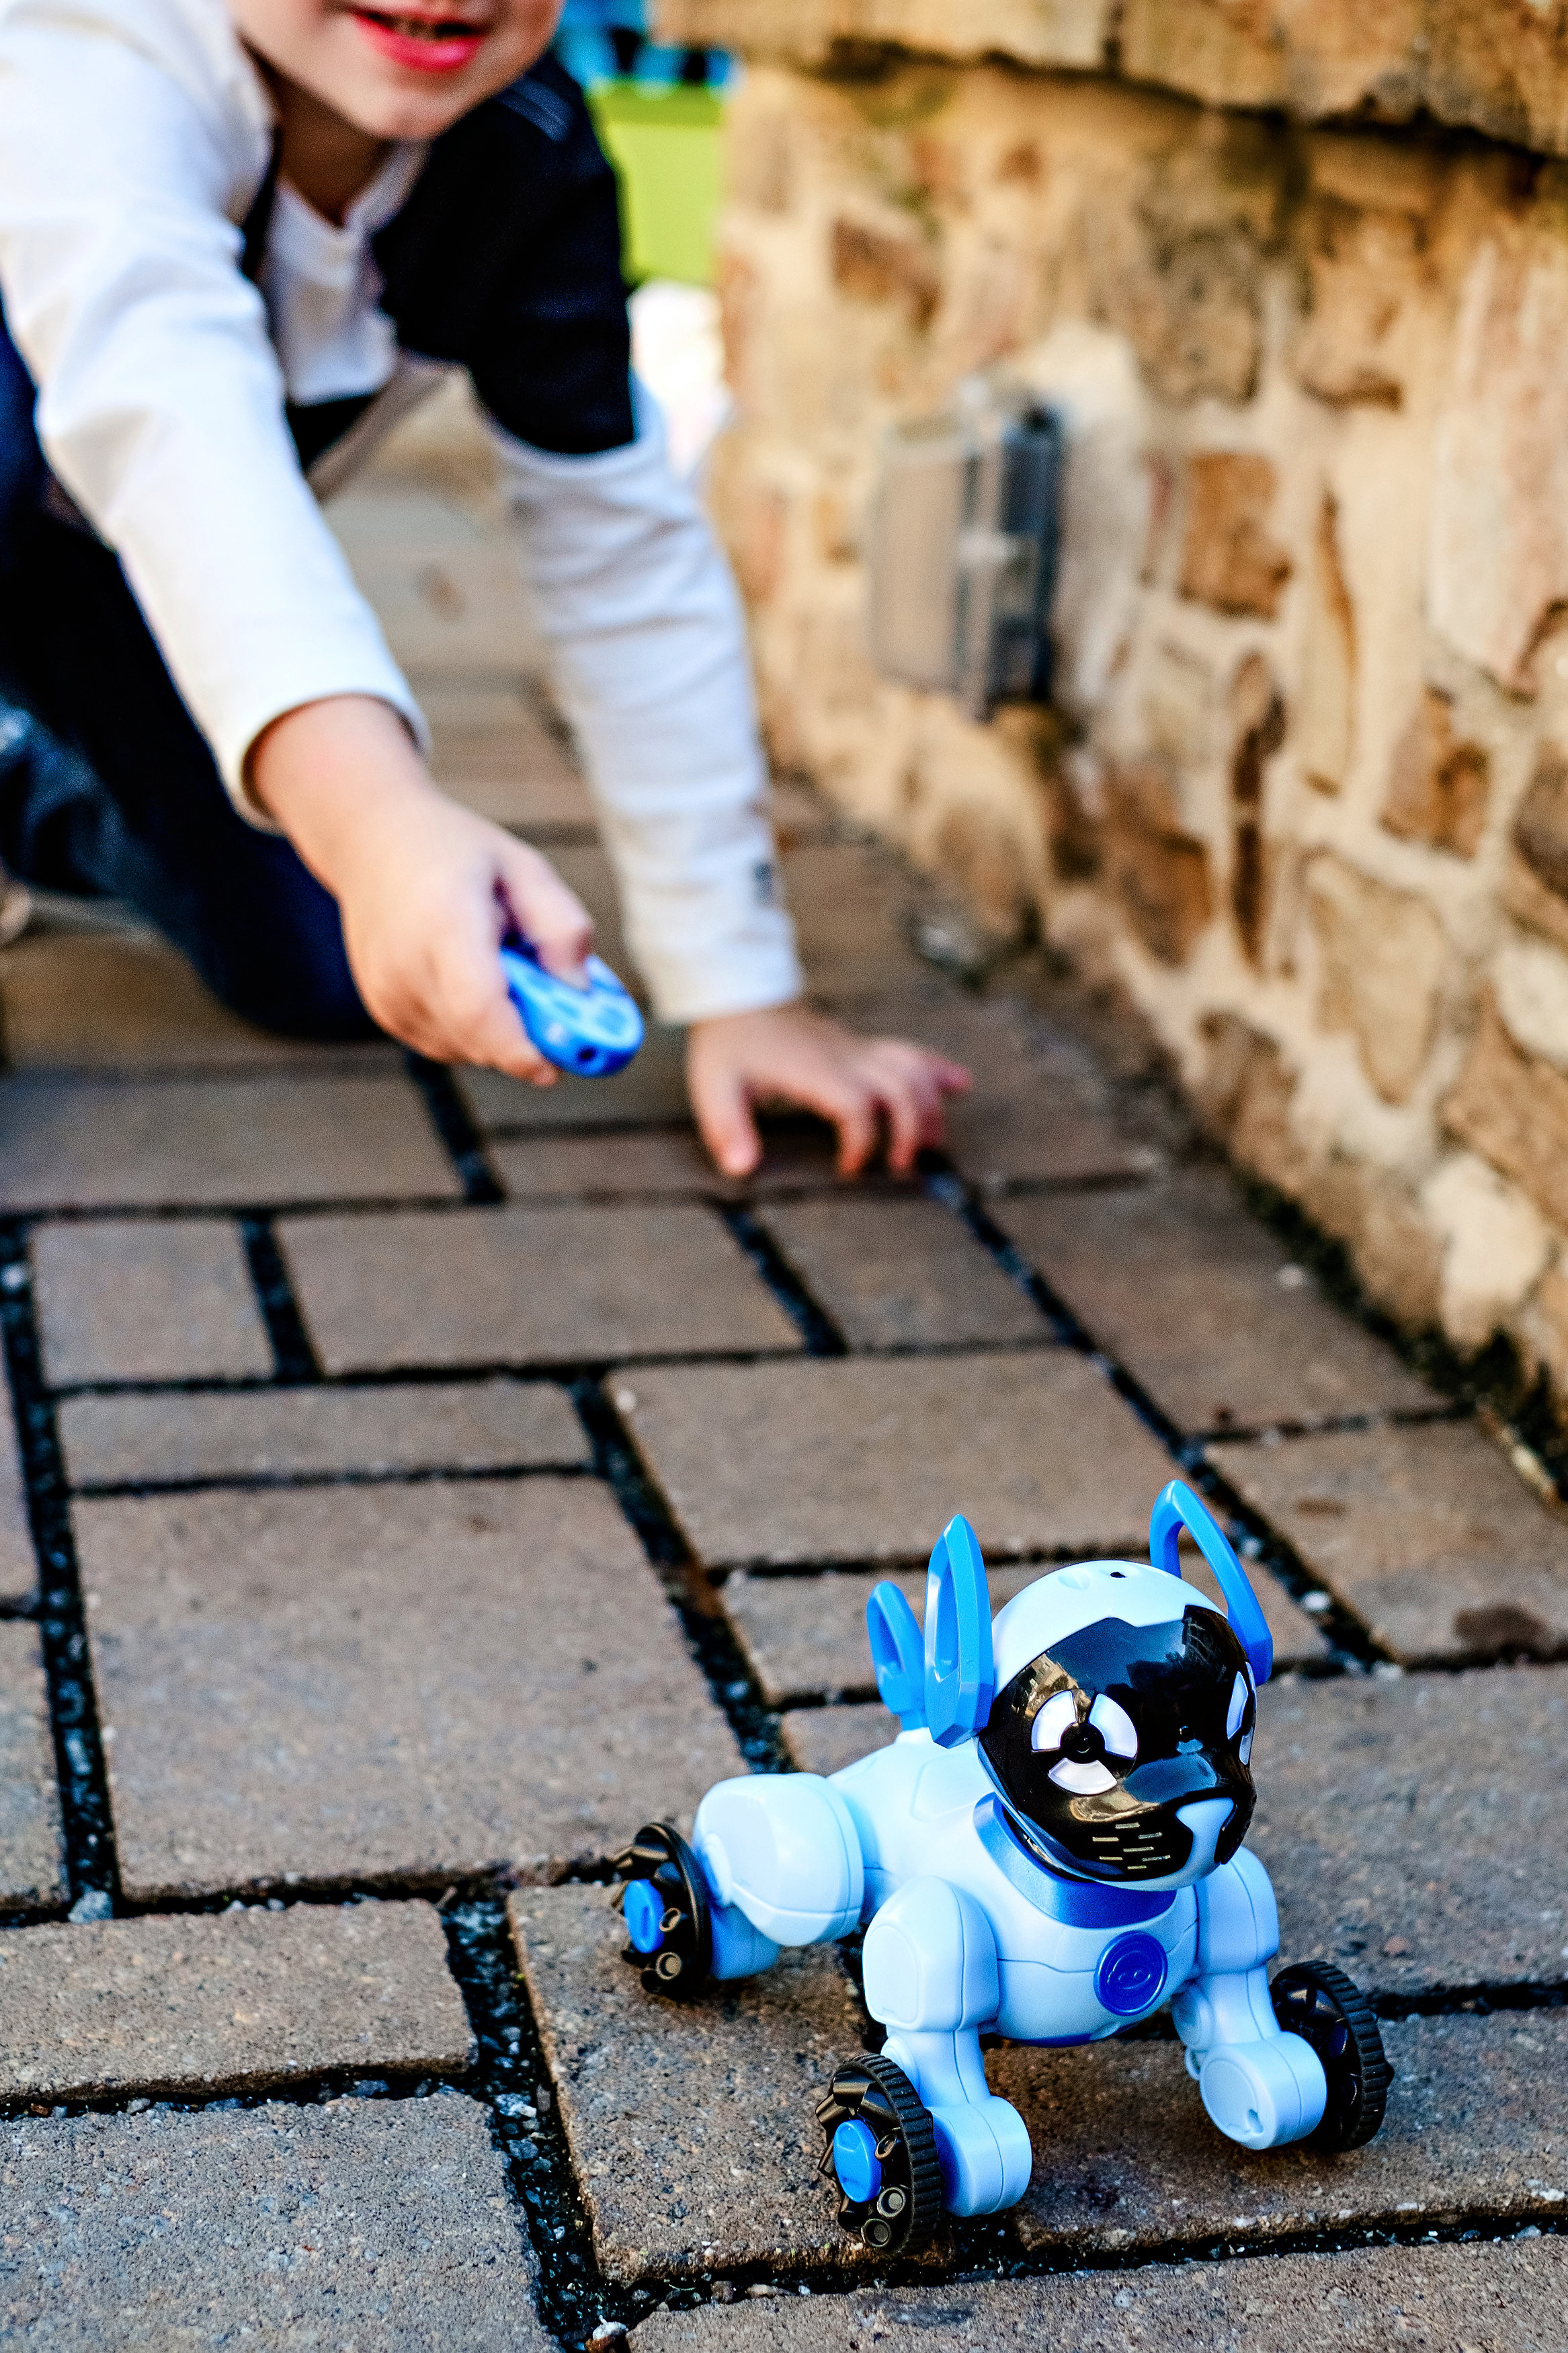 The Best Electronic Toy for Christmas by Atlanta lifestyle blogger Happily Hughes